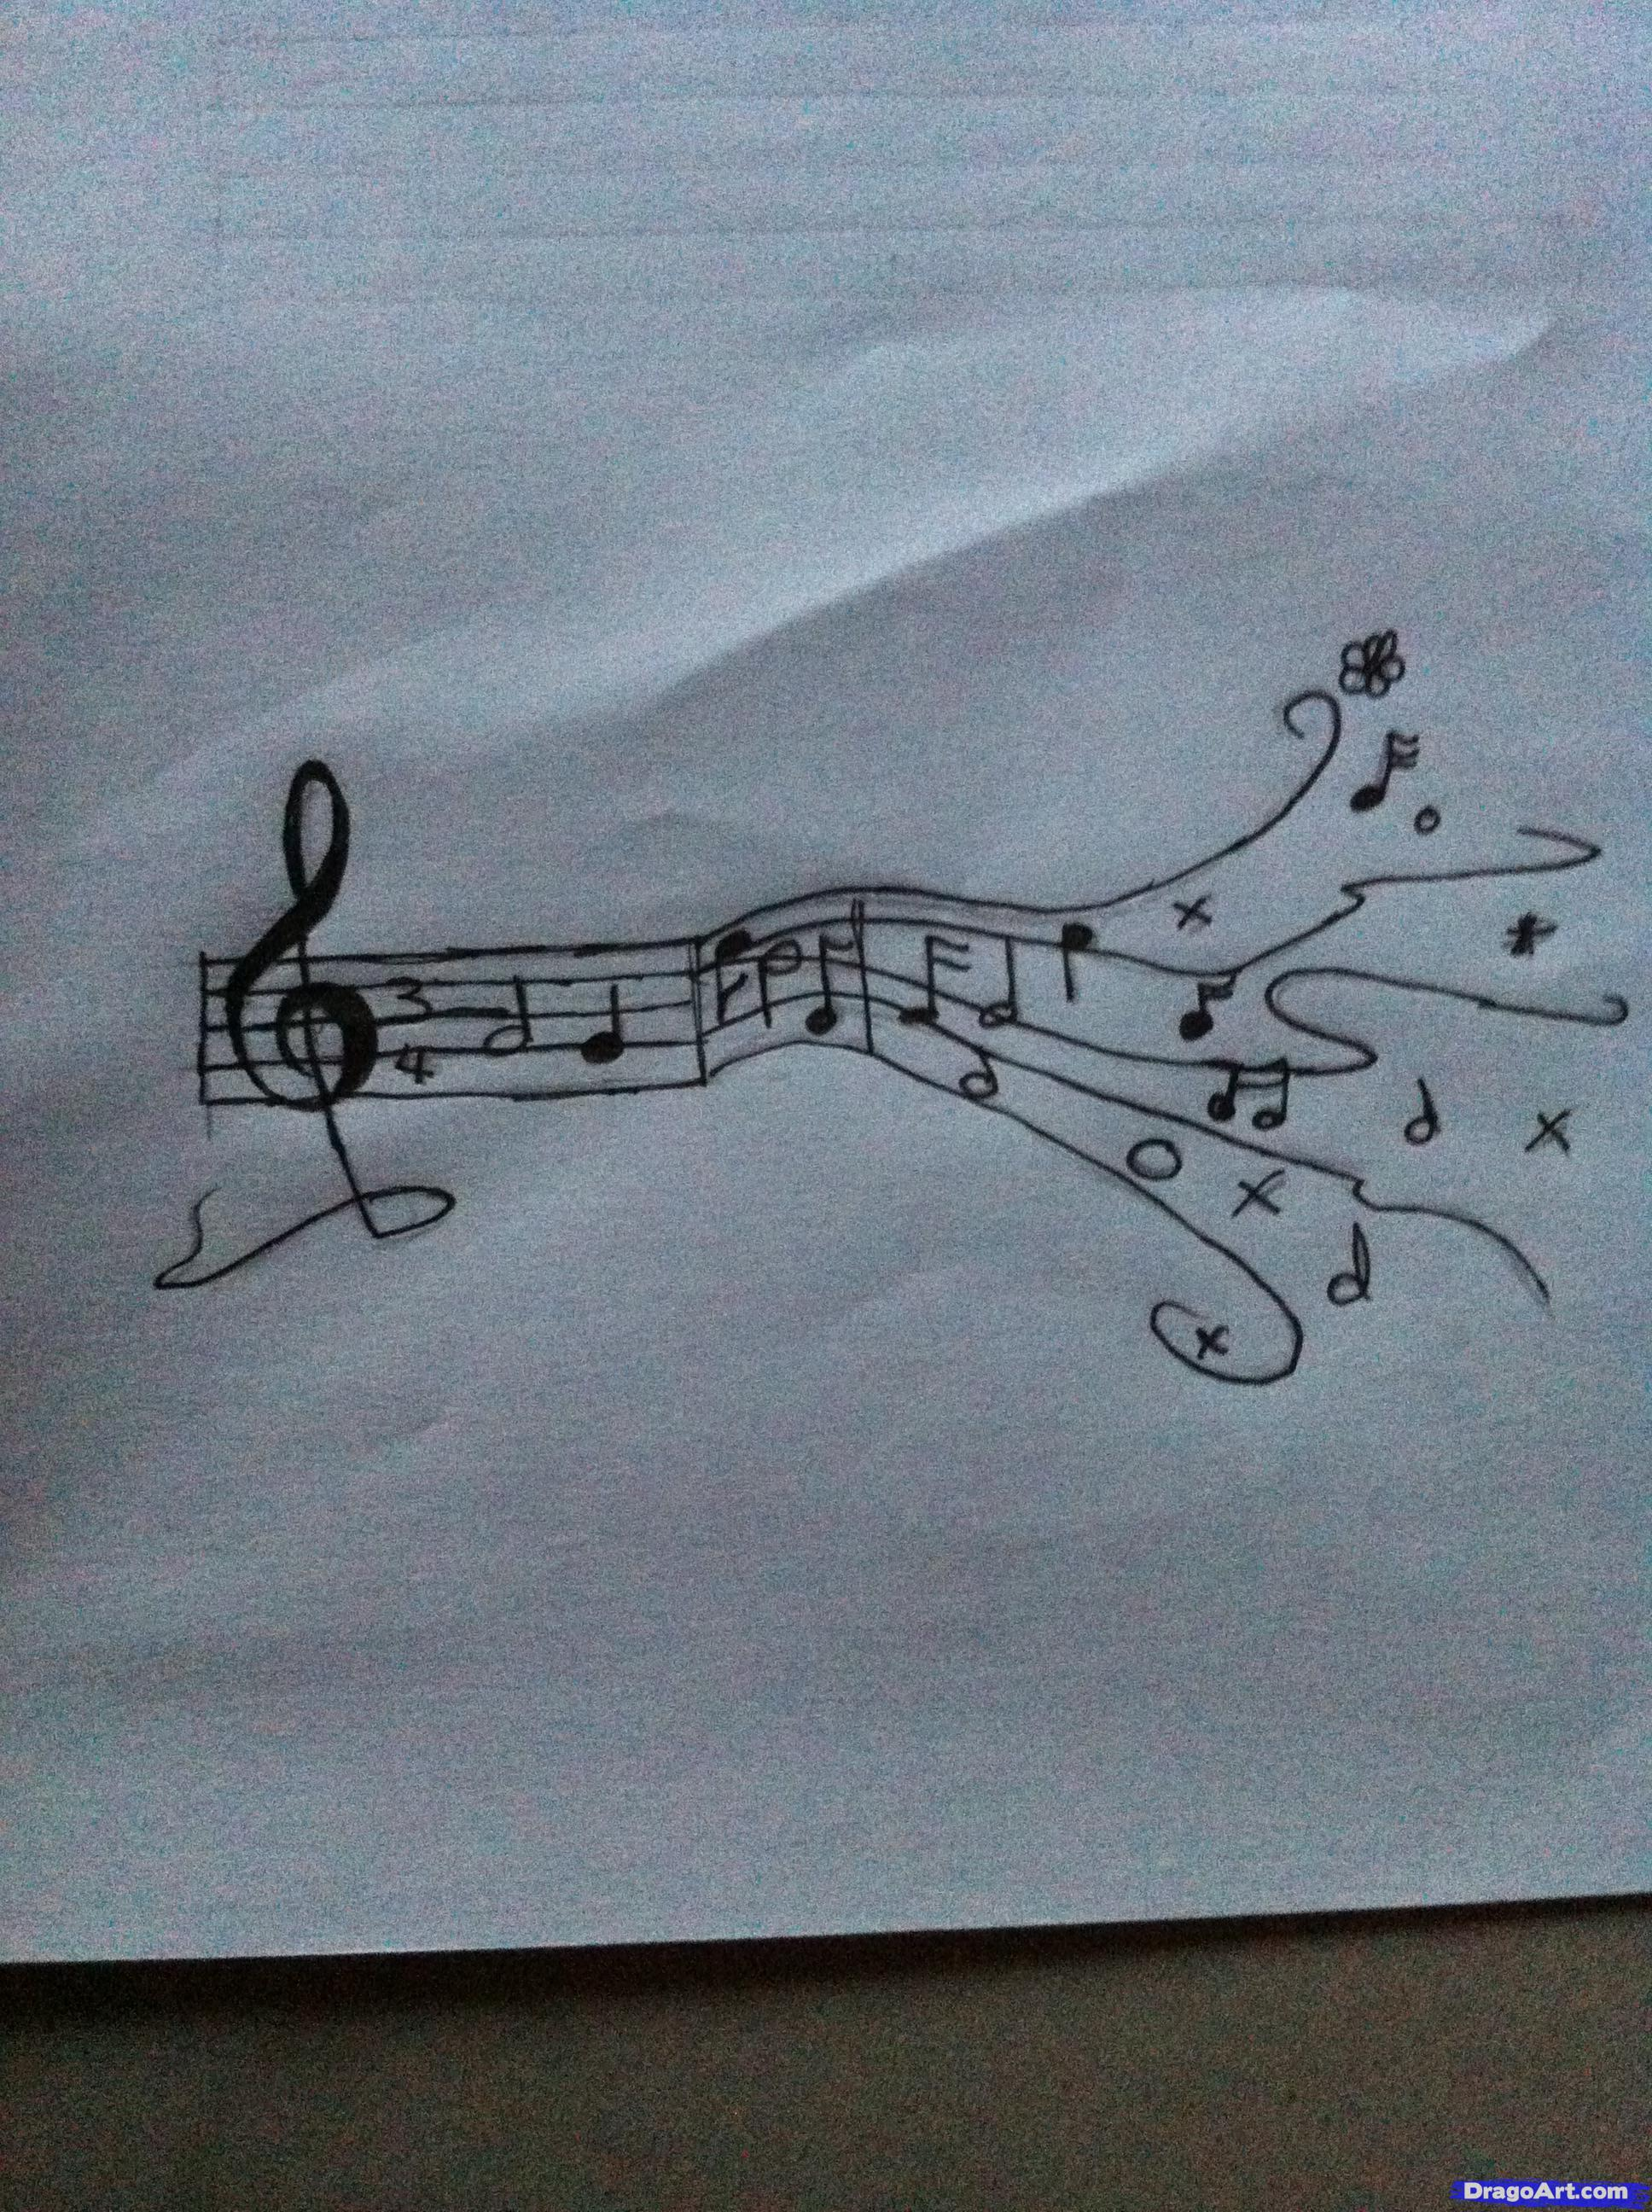 Drawn musician pencil drawing Music music Step notes Notes